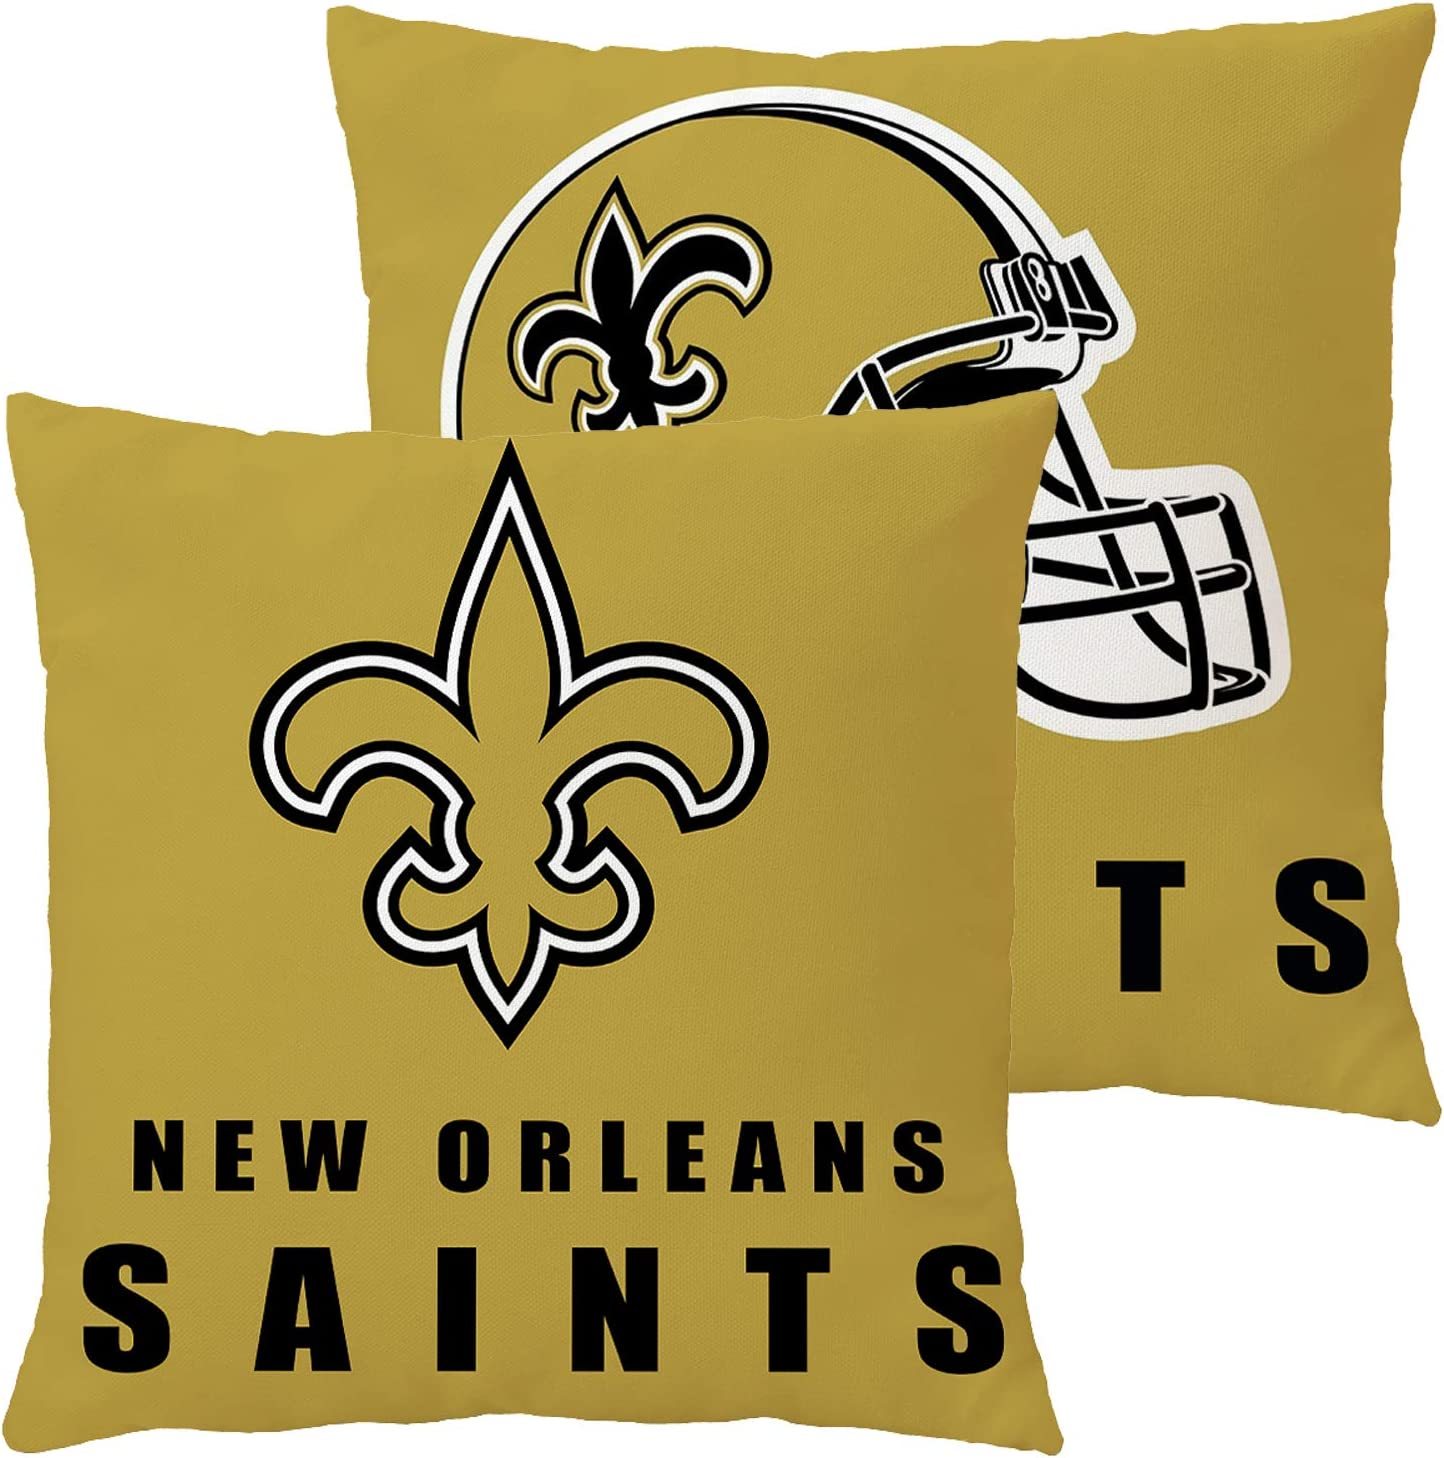 Football Team Throw Pillow Covers Pillow Cases Decorative Pillowcase Double Faced Protecter with Zipper Without Insert 1 pcs for Sofa, Car, Office, Bed, Chair (New Orleans Saints)